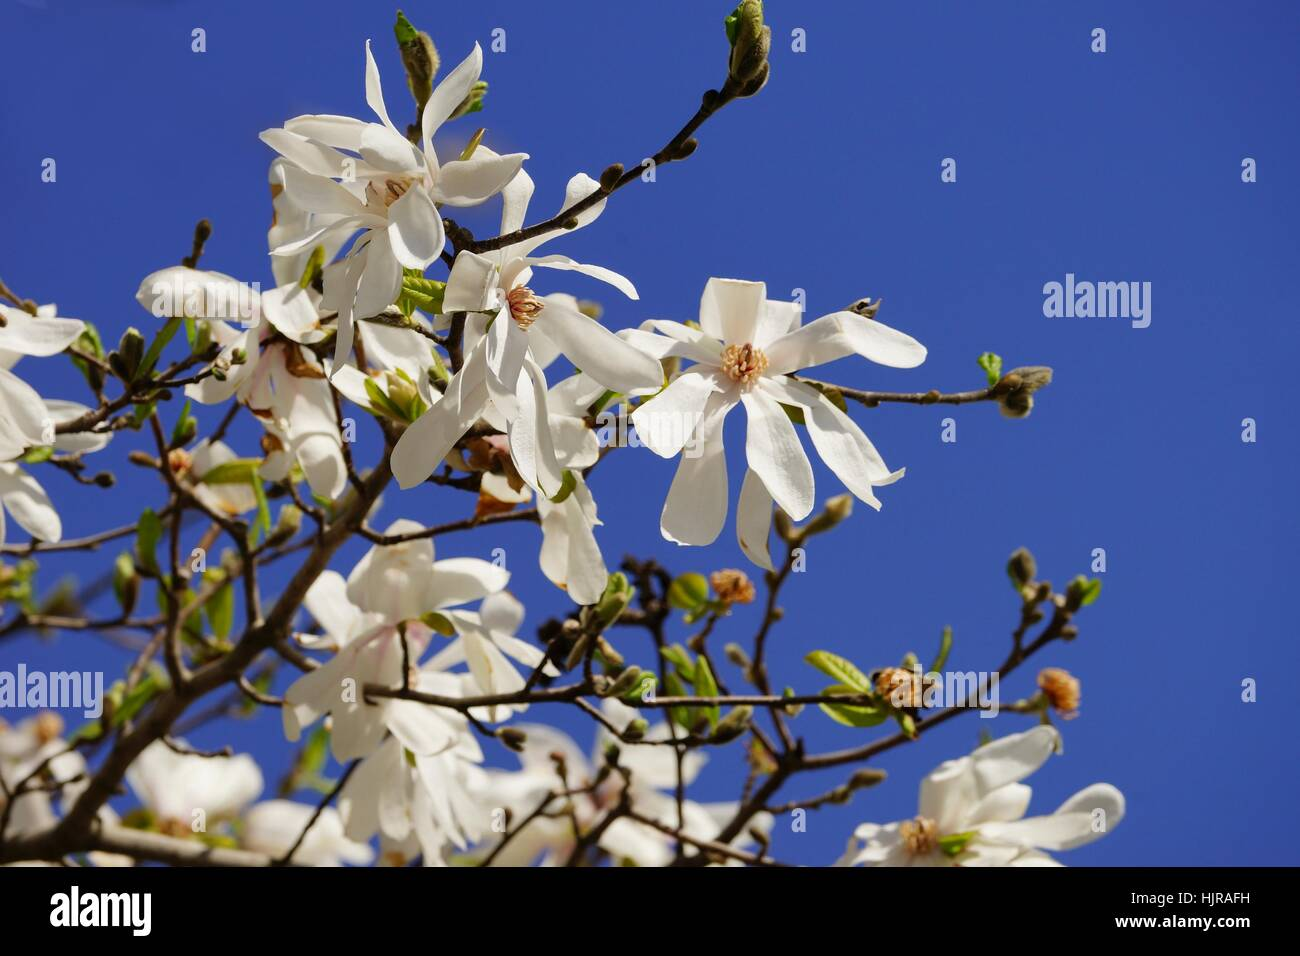 Magnoliids Stock Photos Magnoliids Stock Images Alamy